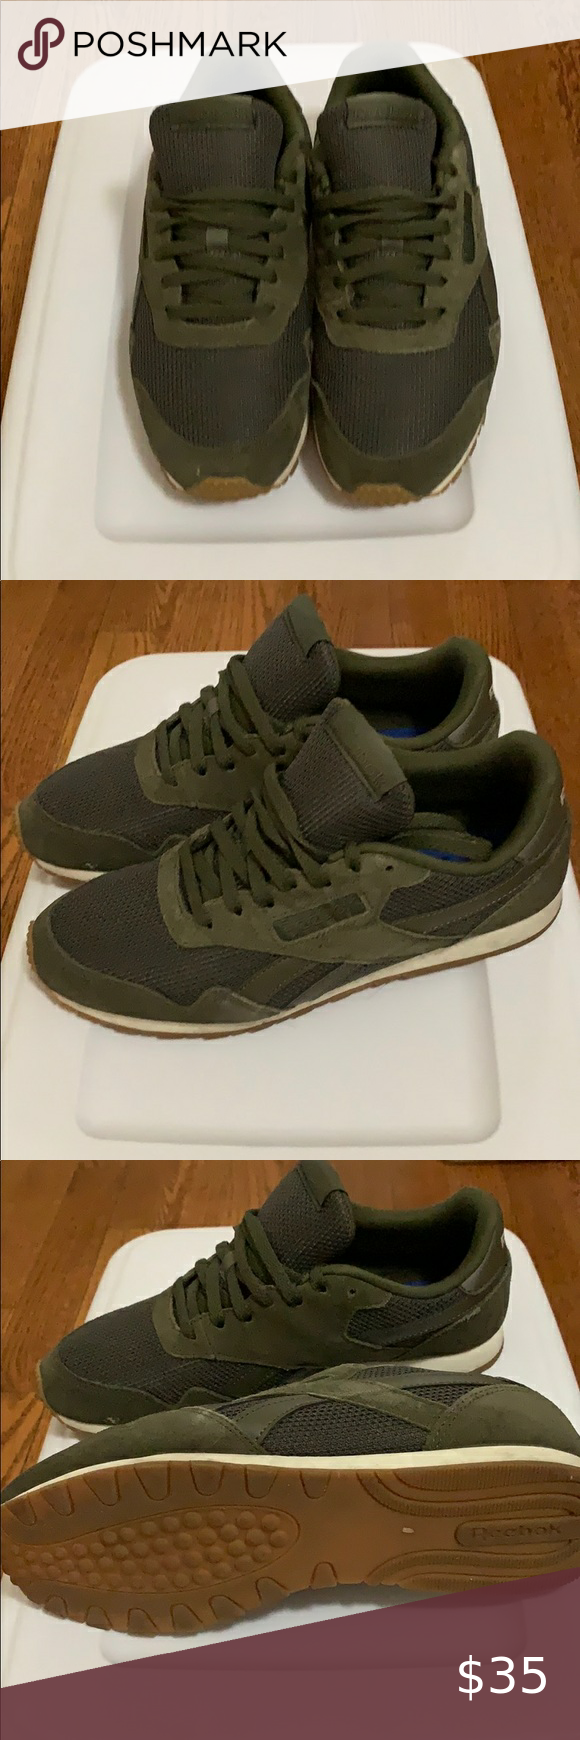 simultáneo cola Series de tiempo  Reebok royal ultra classic olive green sneakers in 2020 | Olive green  sneakers, Green sneakers, Sneakers